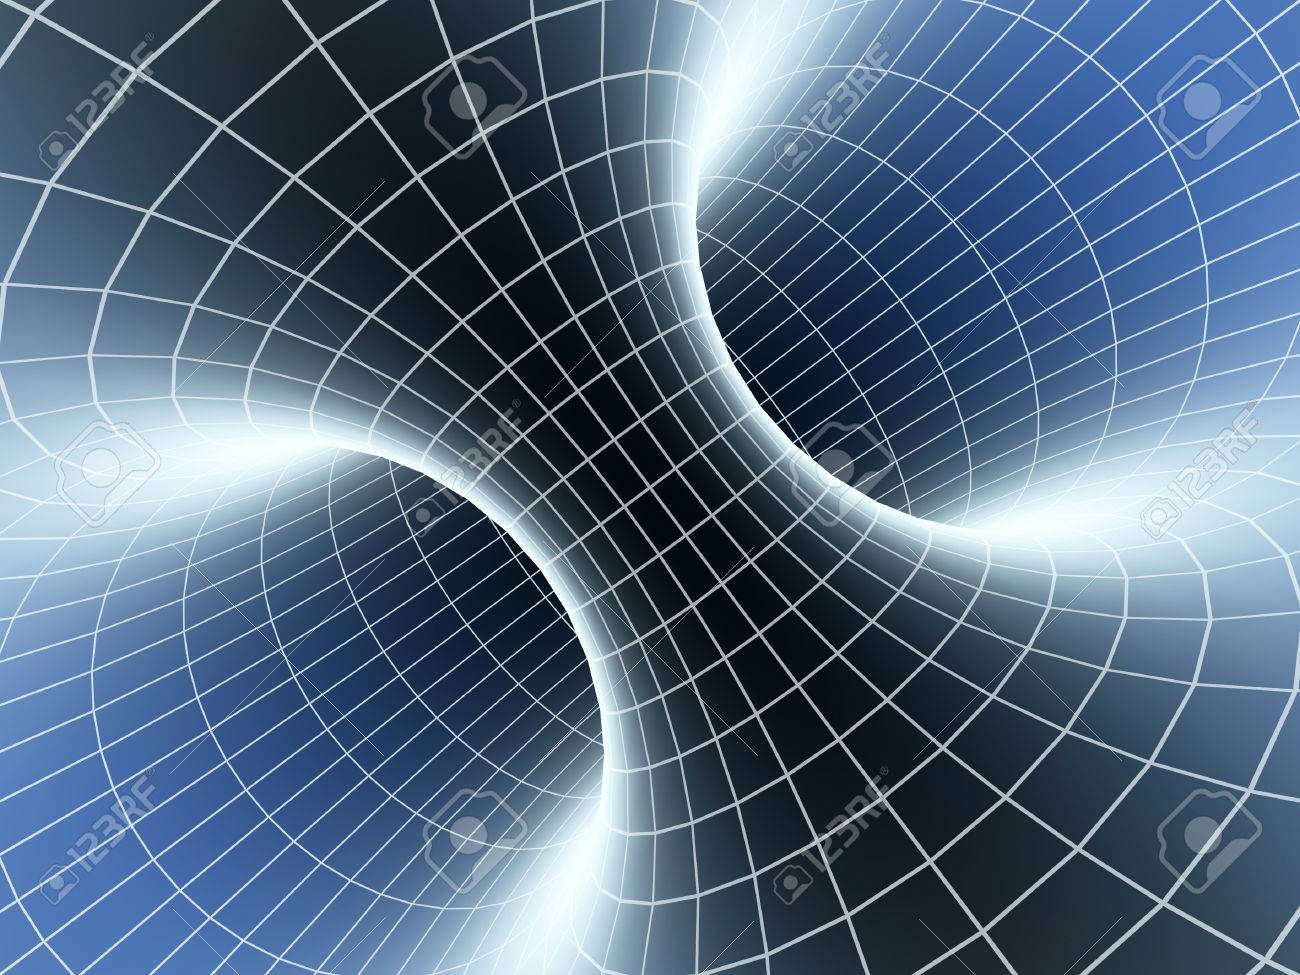 abstract wormhole 3d background